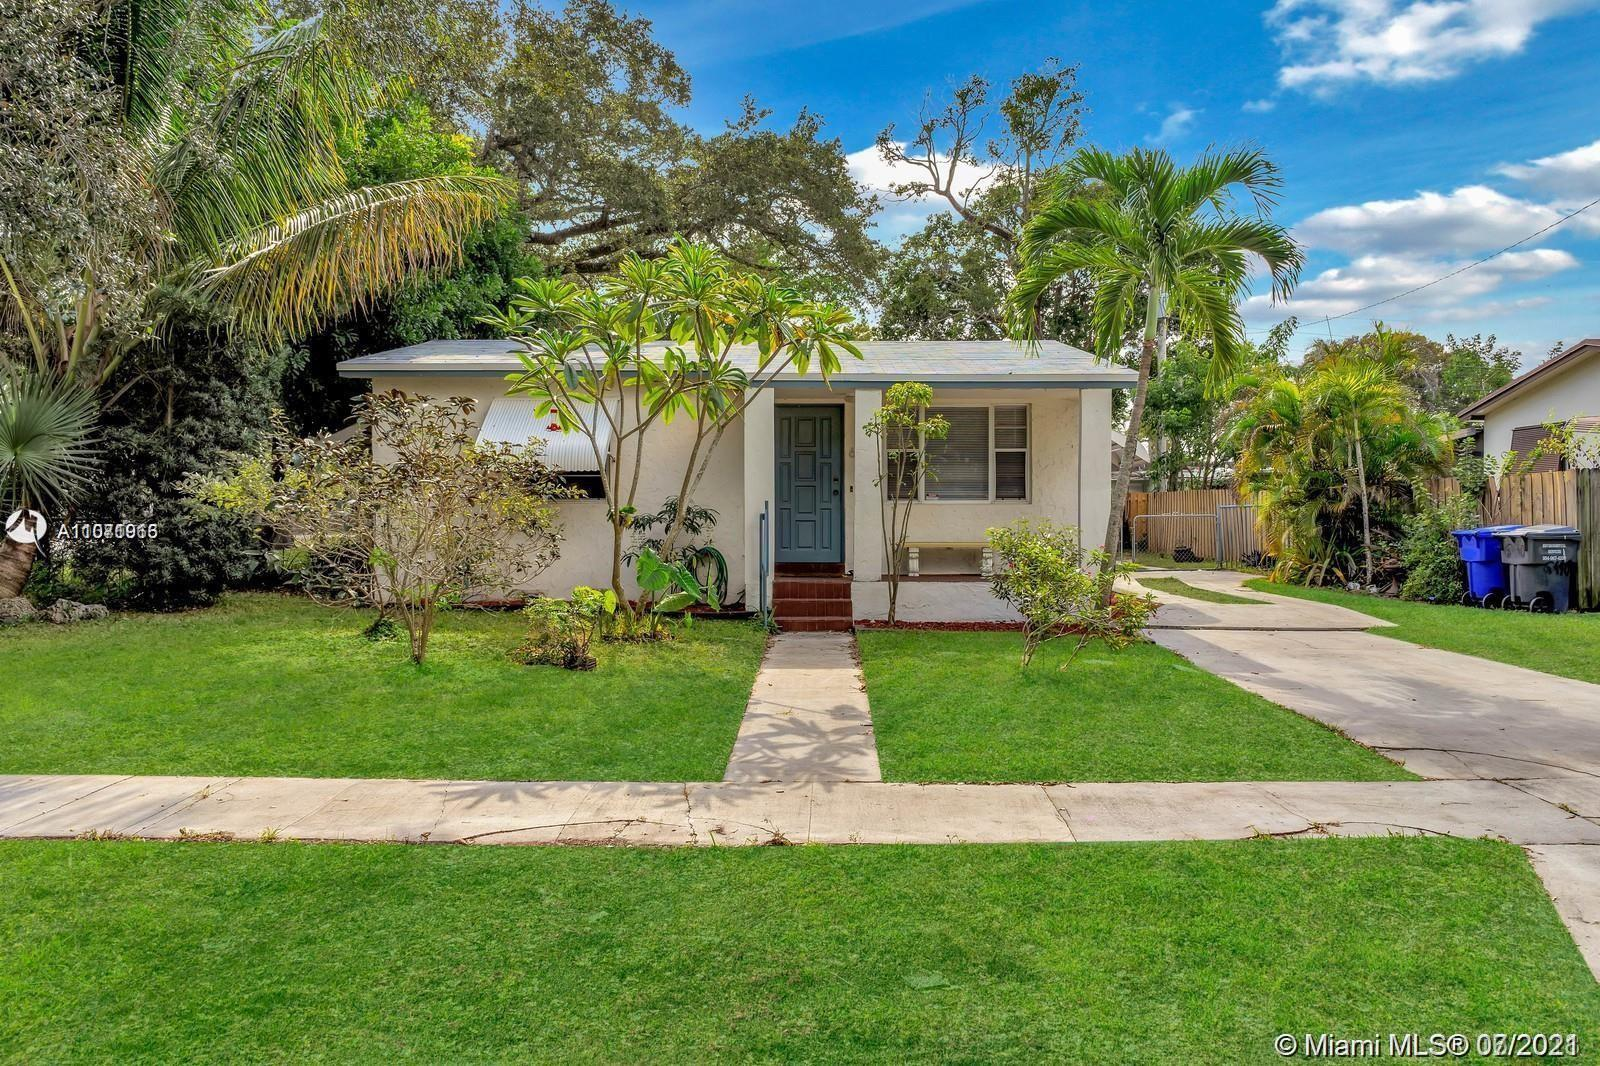 AMAZING INCOME PRODUCER OR GREAT STARTING HOME!!! FULLY RENOVATED FROM TOP TO BOTTOM!!! ORIGINALLY A